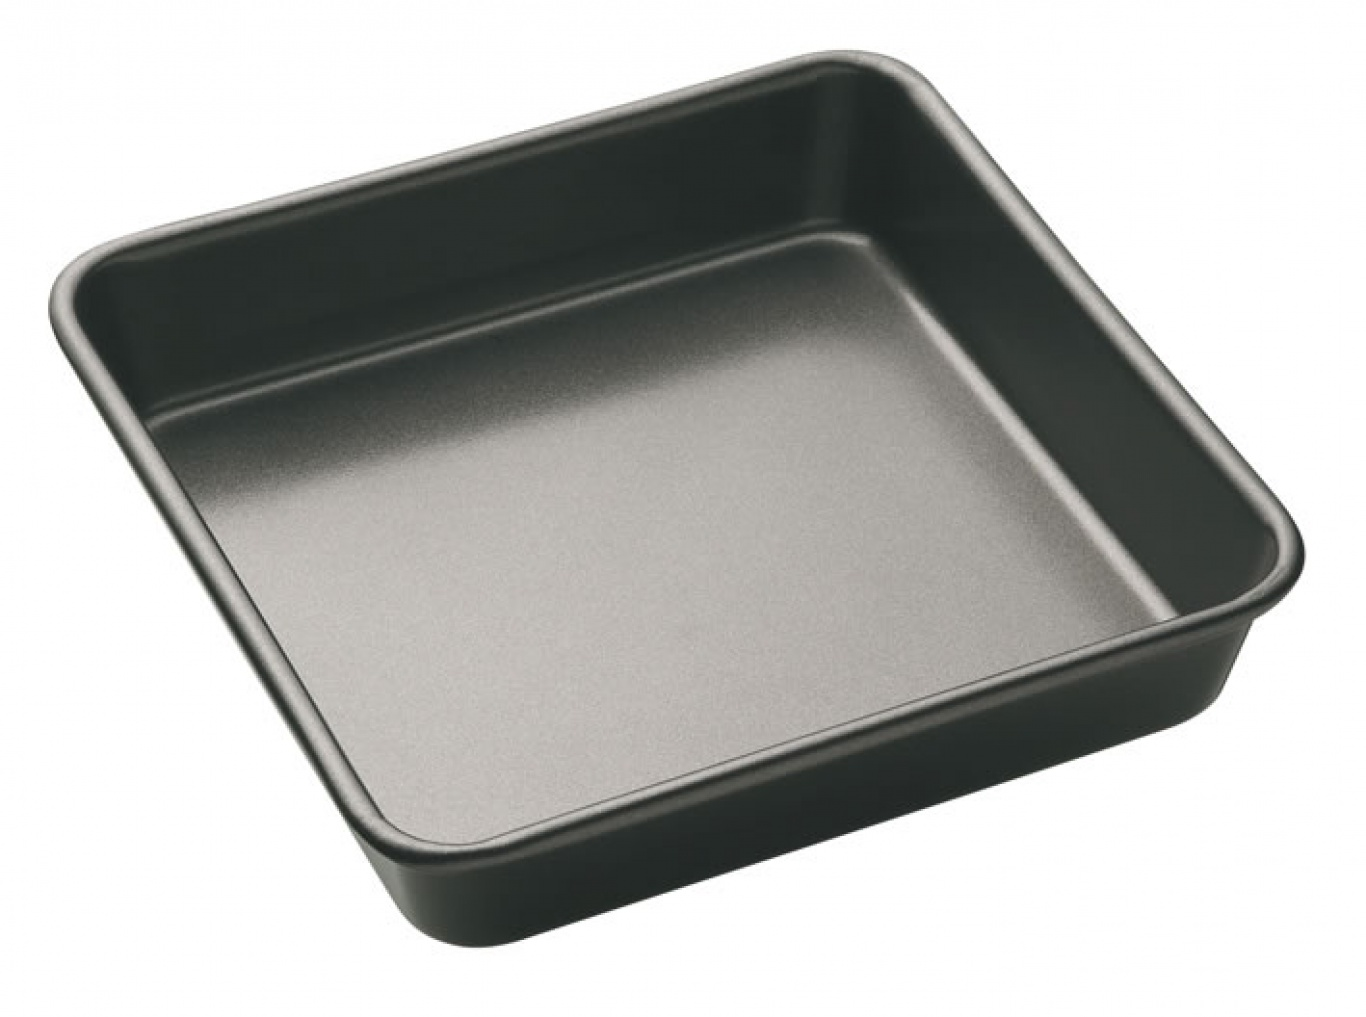 Image of Non Stick Square Bake Pan 23cm x 23cm x  4cm